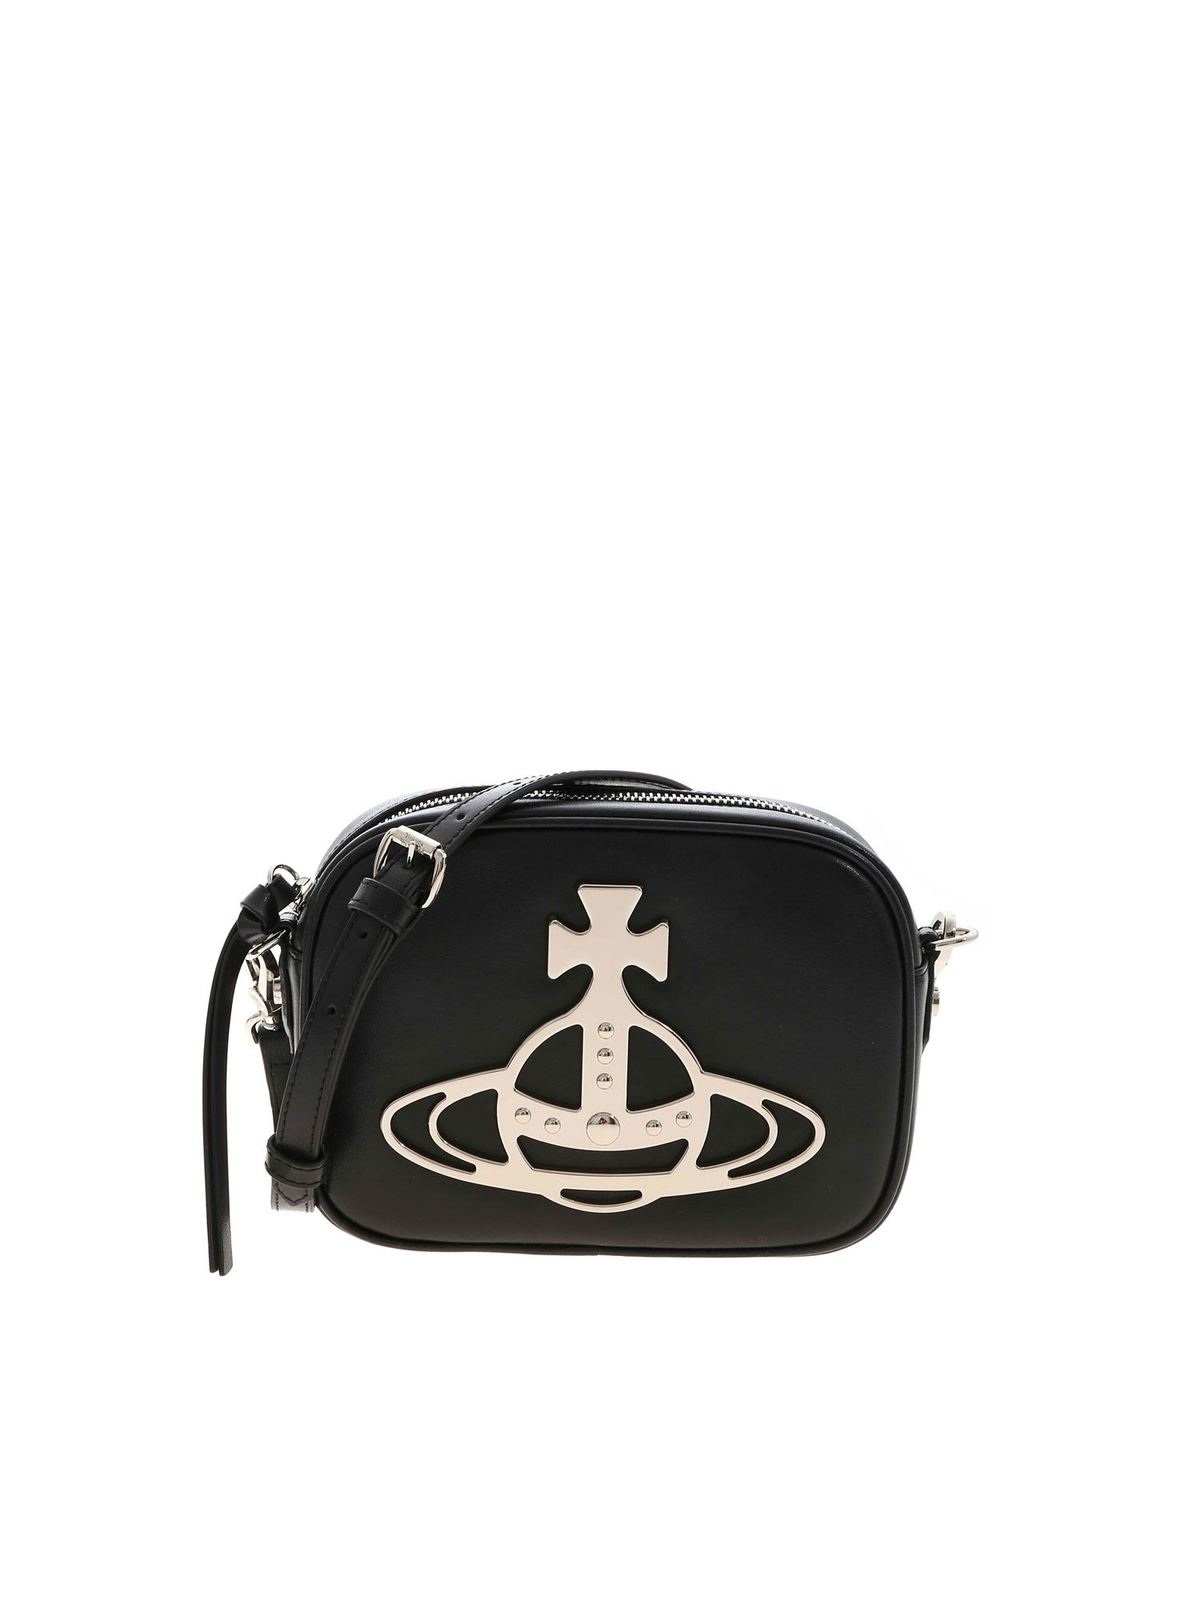 Vivienne Westwood ANNA CAMERA BAG IN BLACK